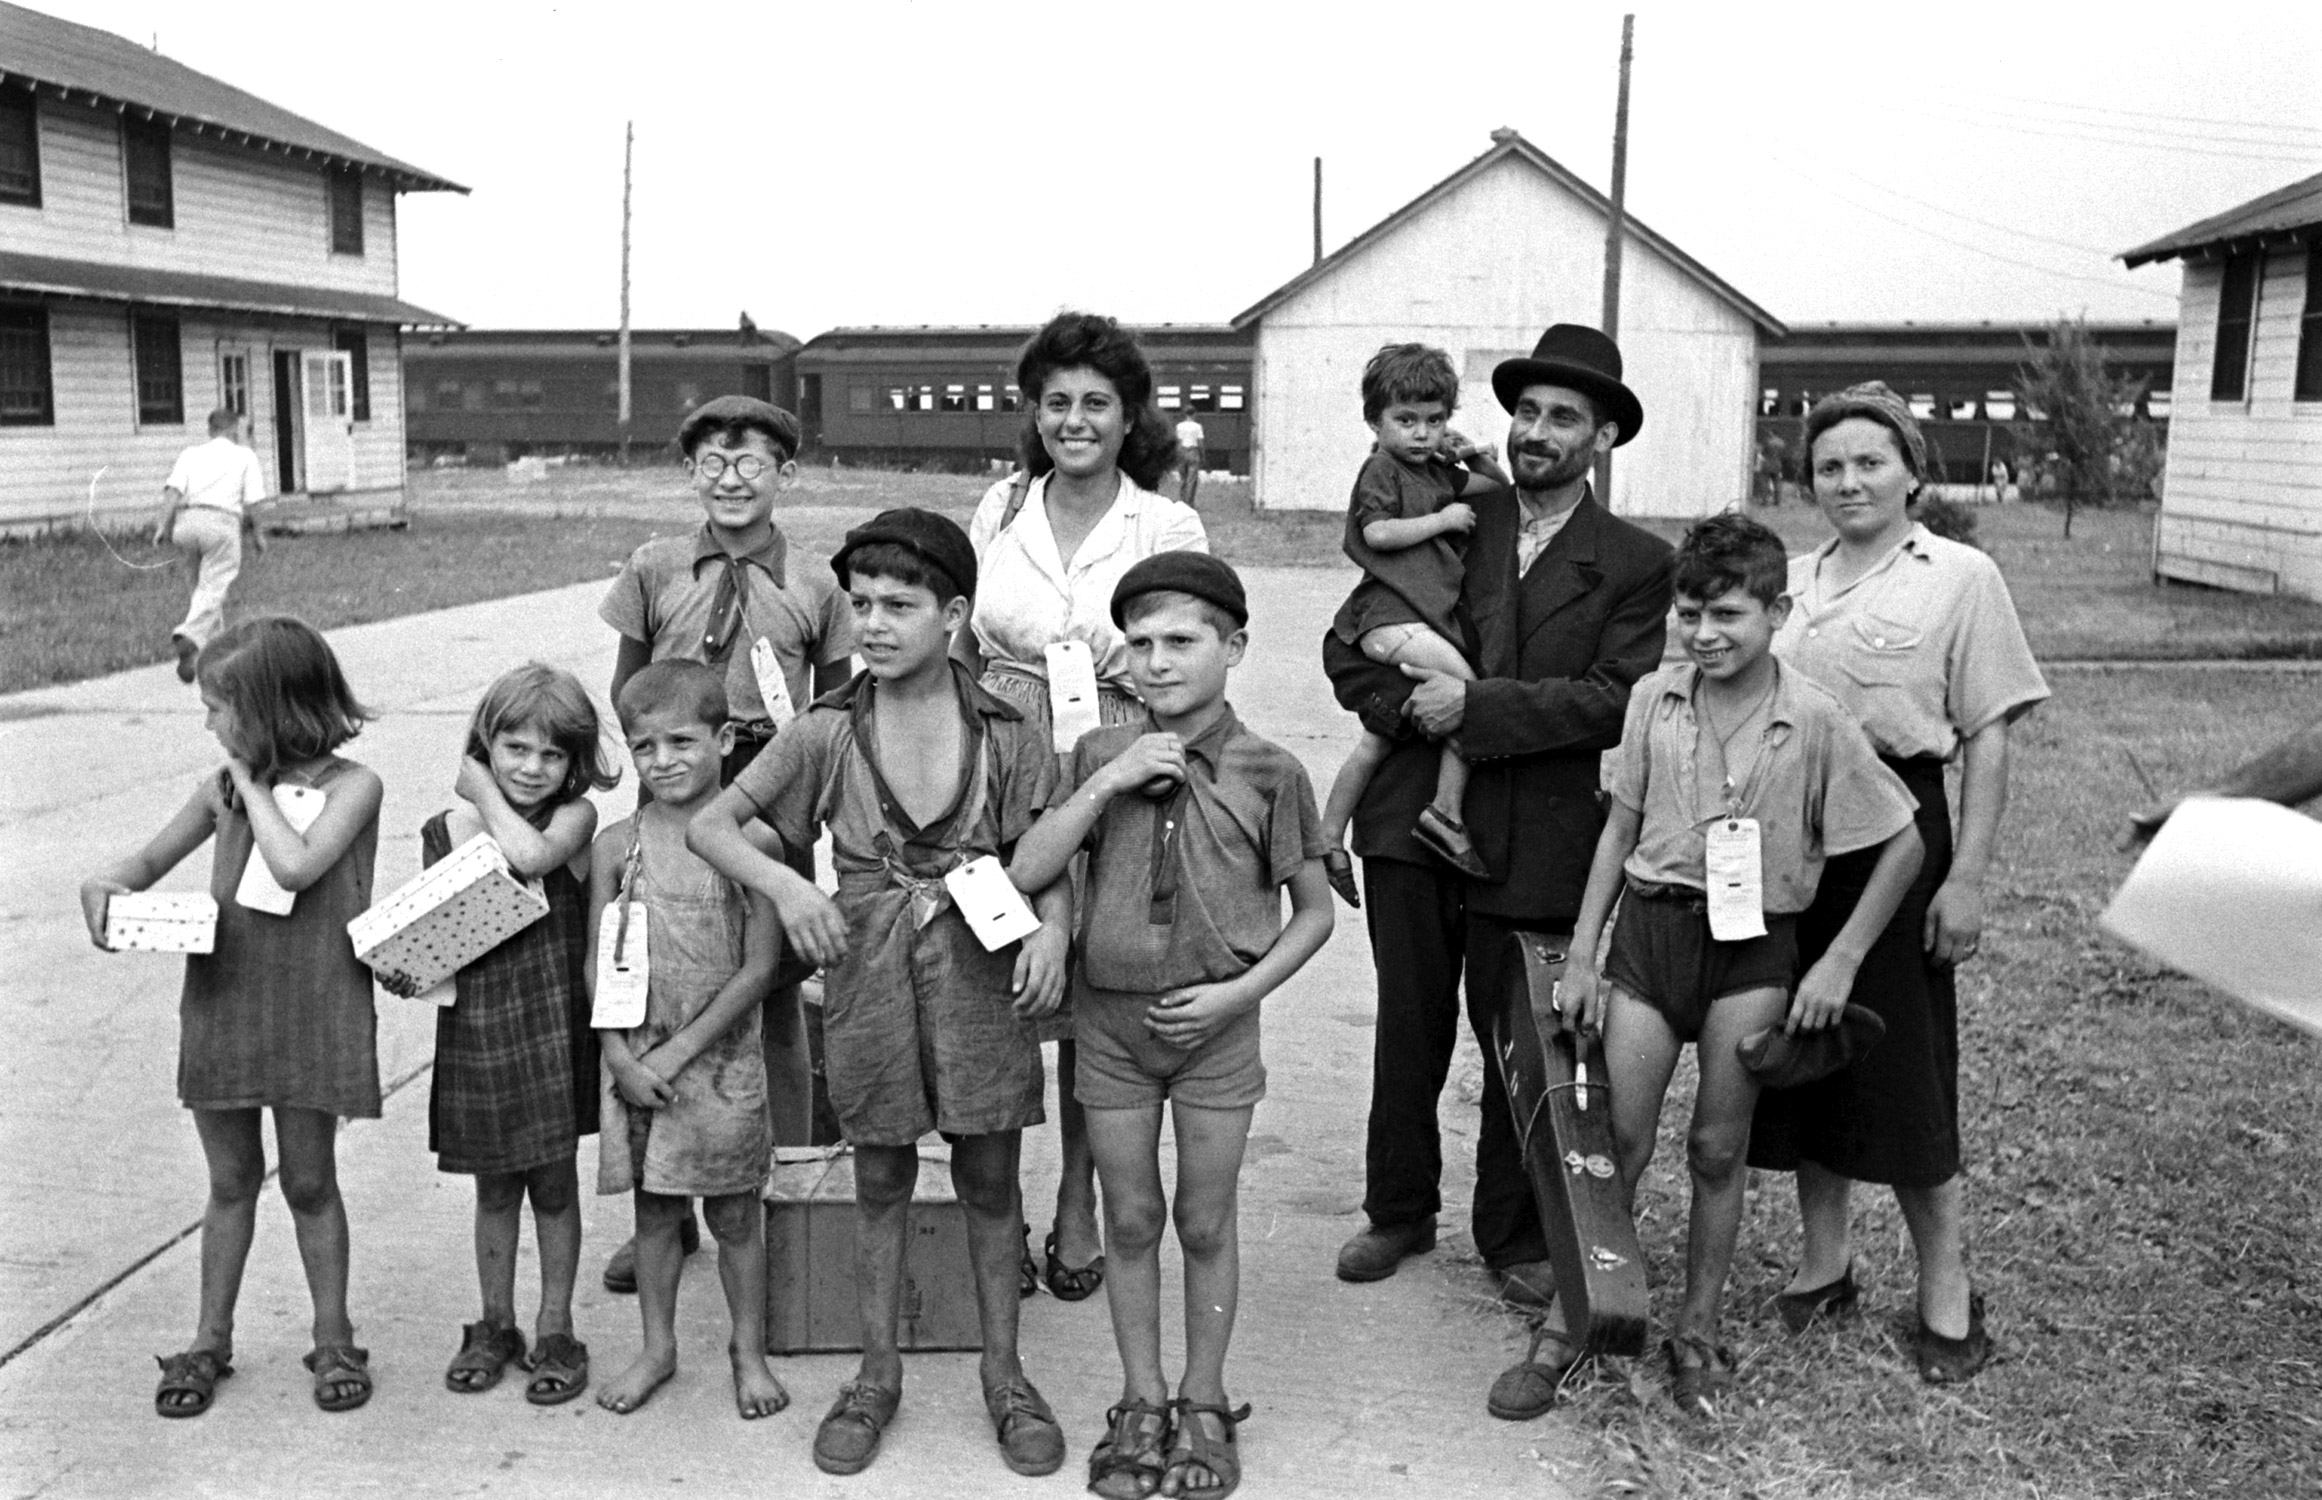 Refugees from Europe at Fort Ontario in Oswego, N.Y., 1944.